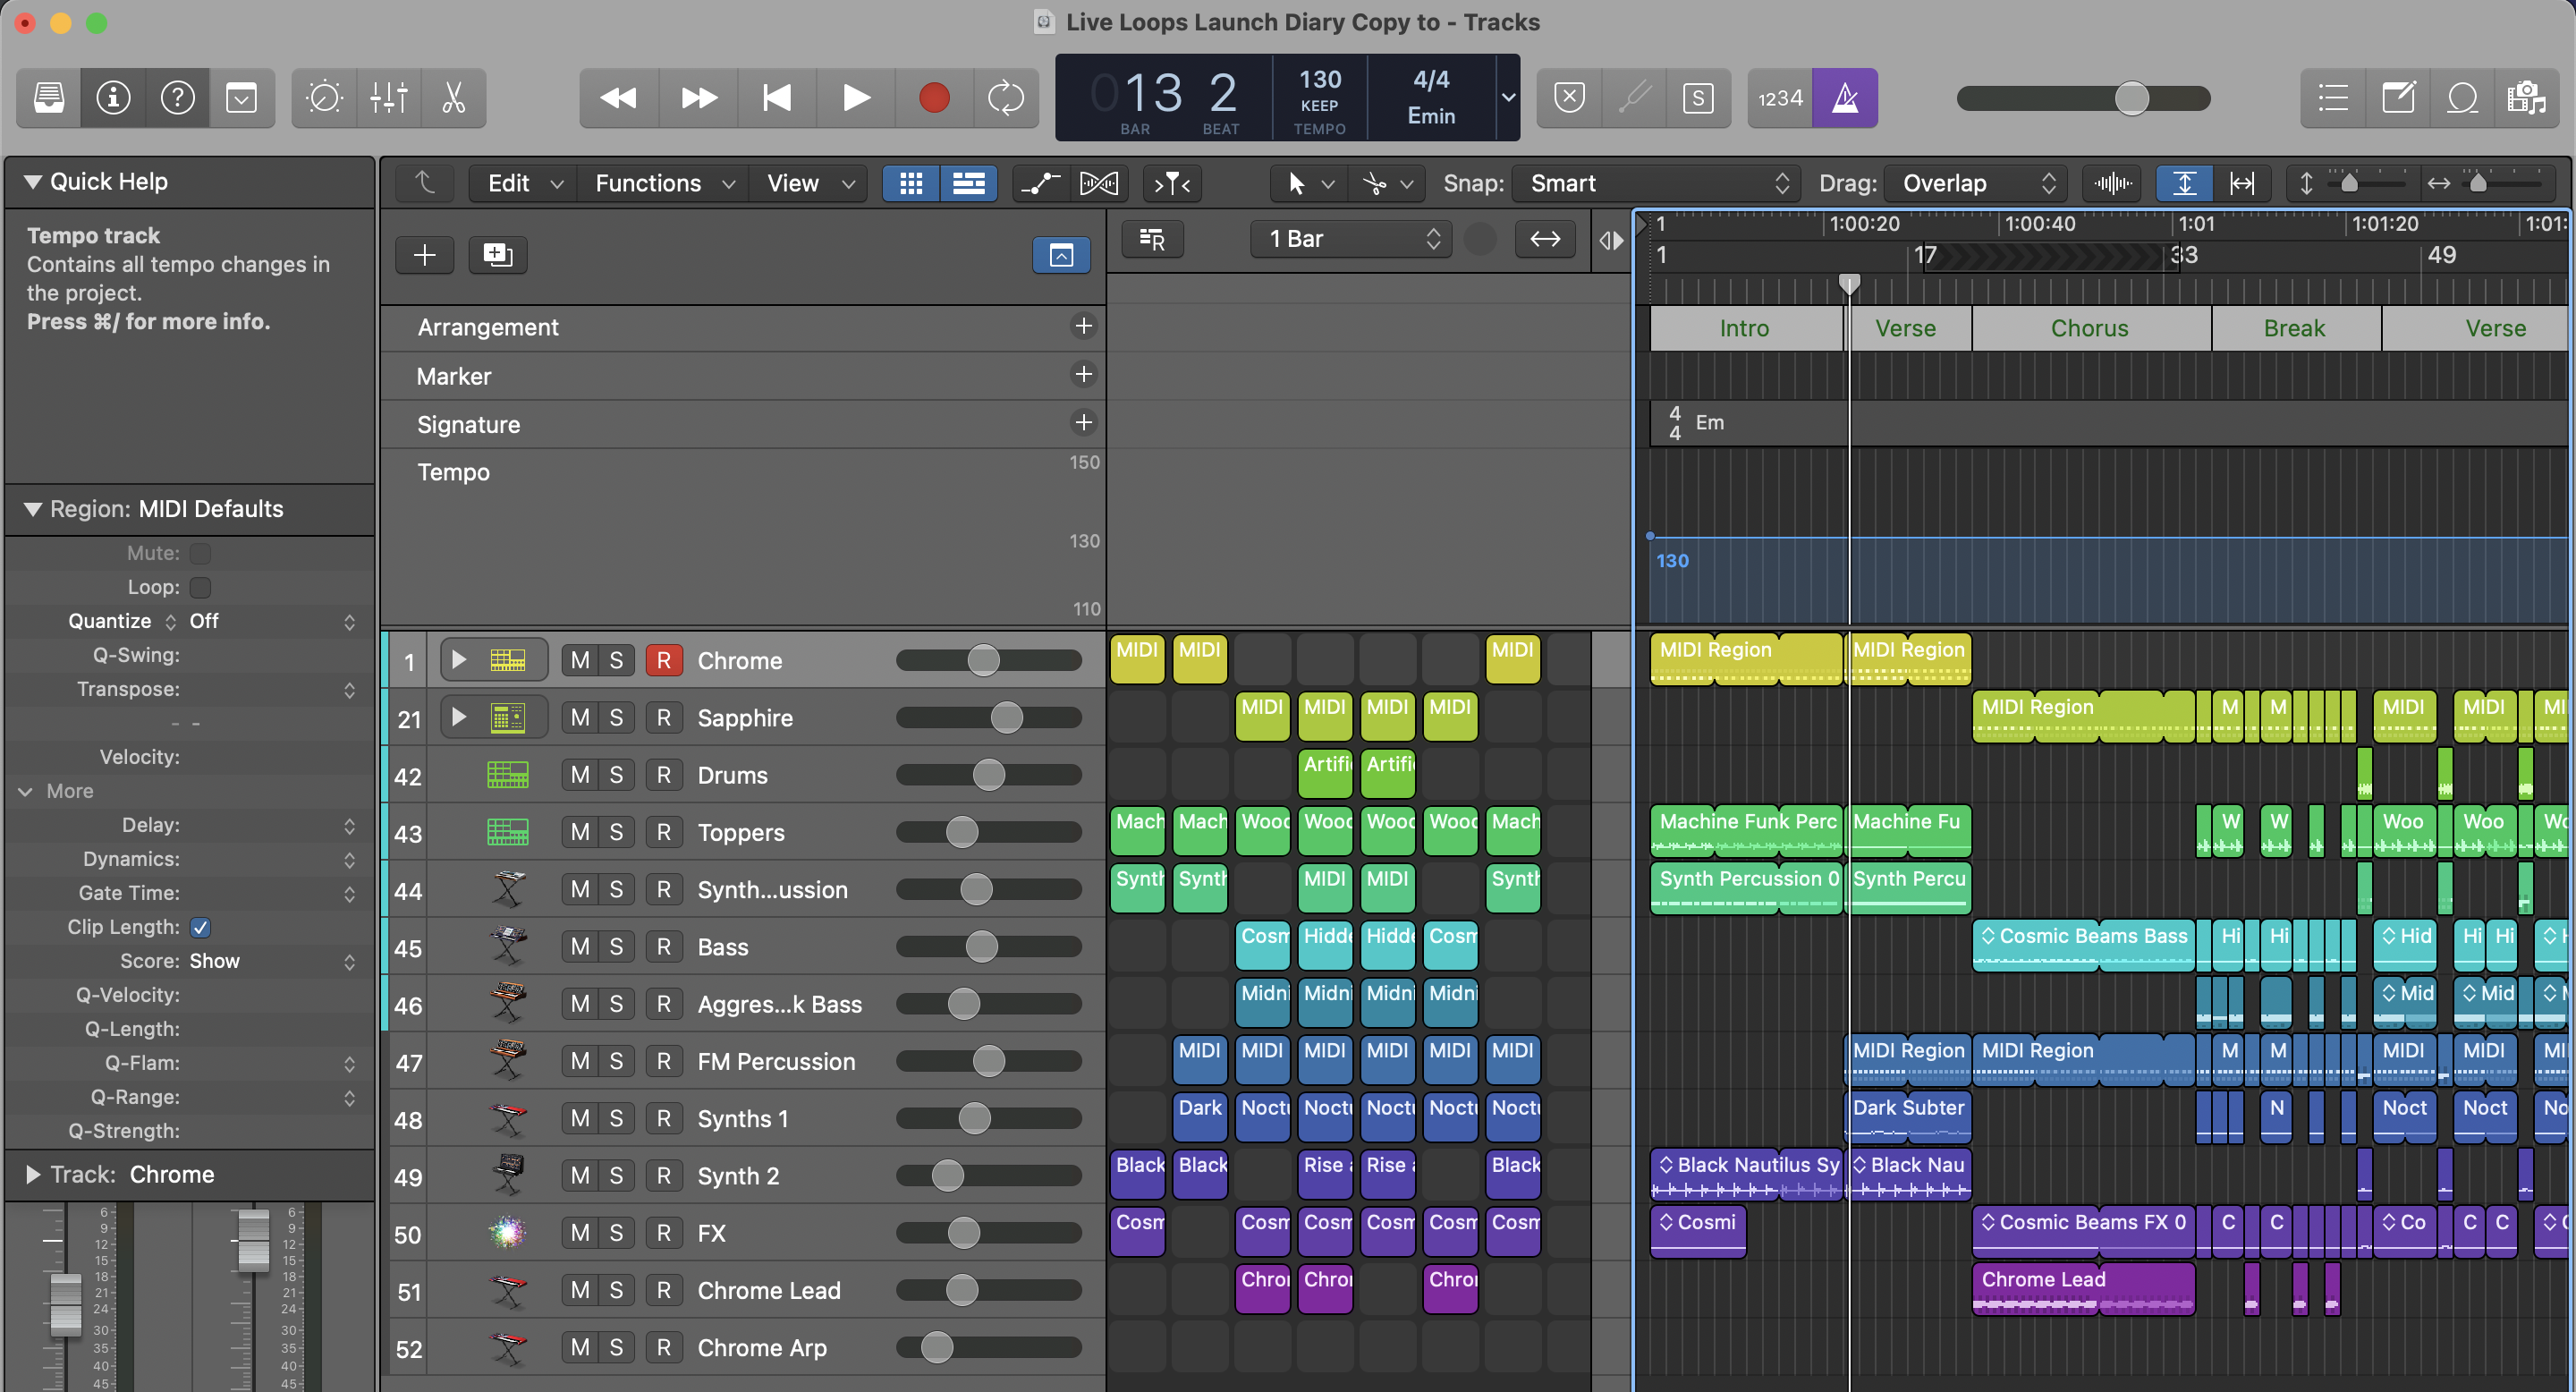 Copy whole song to Live Loops Logic Pro